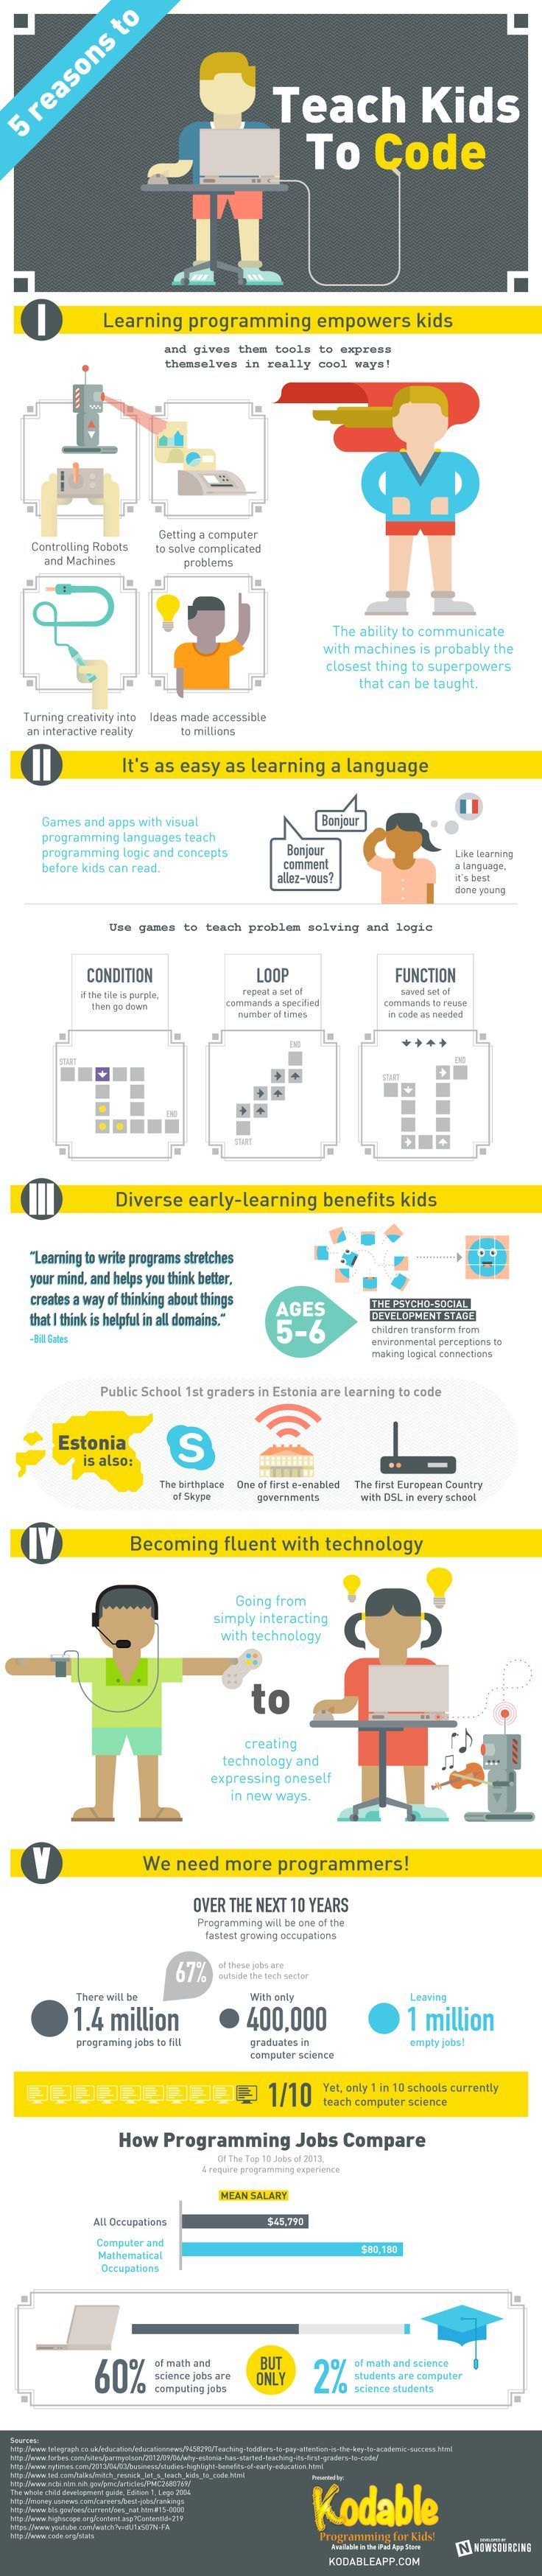 Happy Digital Learning Day! Learn why computer science should make a comeback in schools. #edtech #digitallearning #infographic